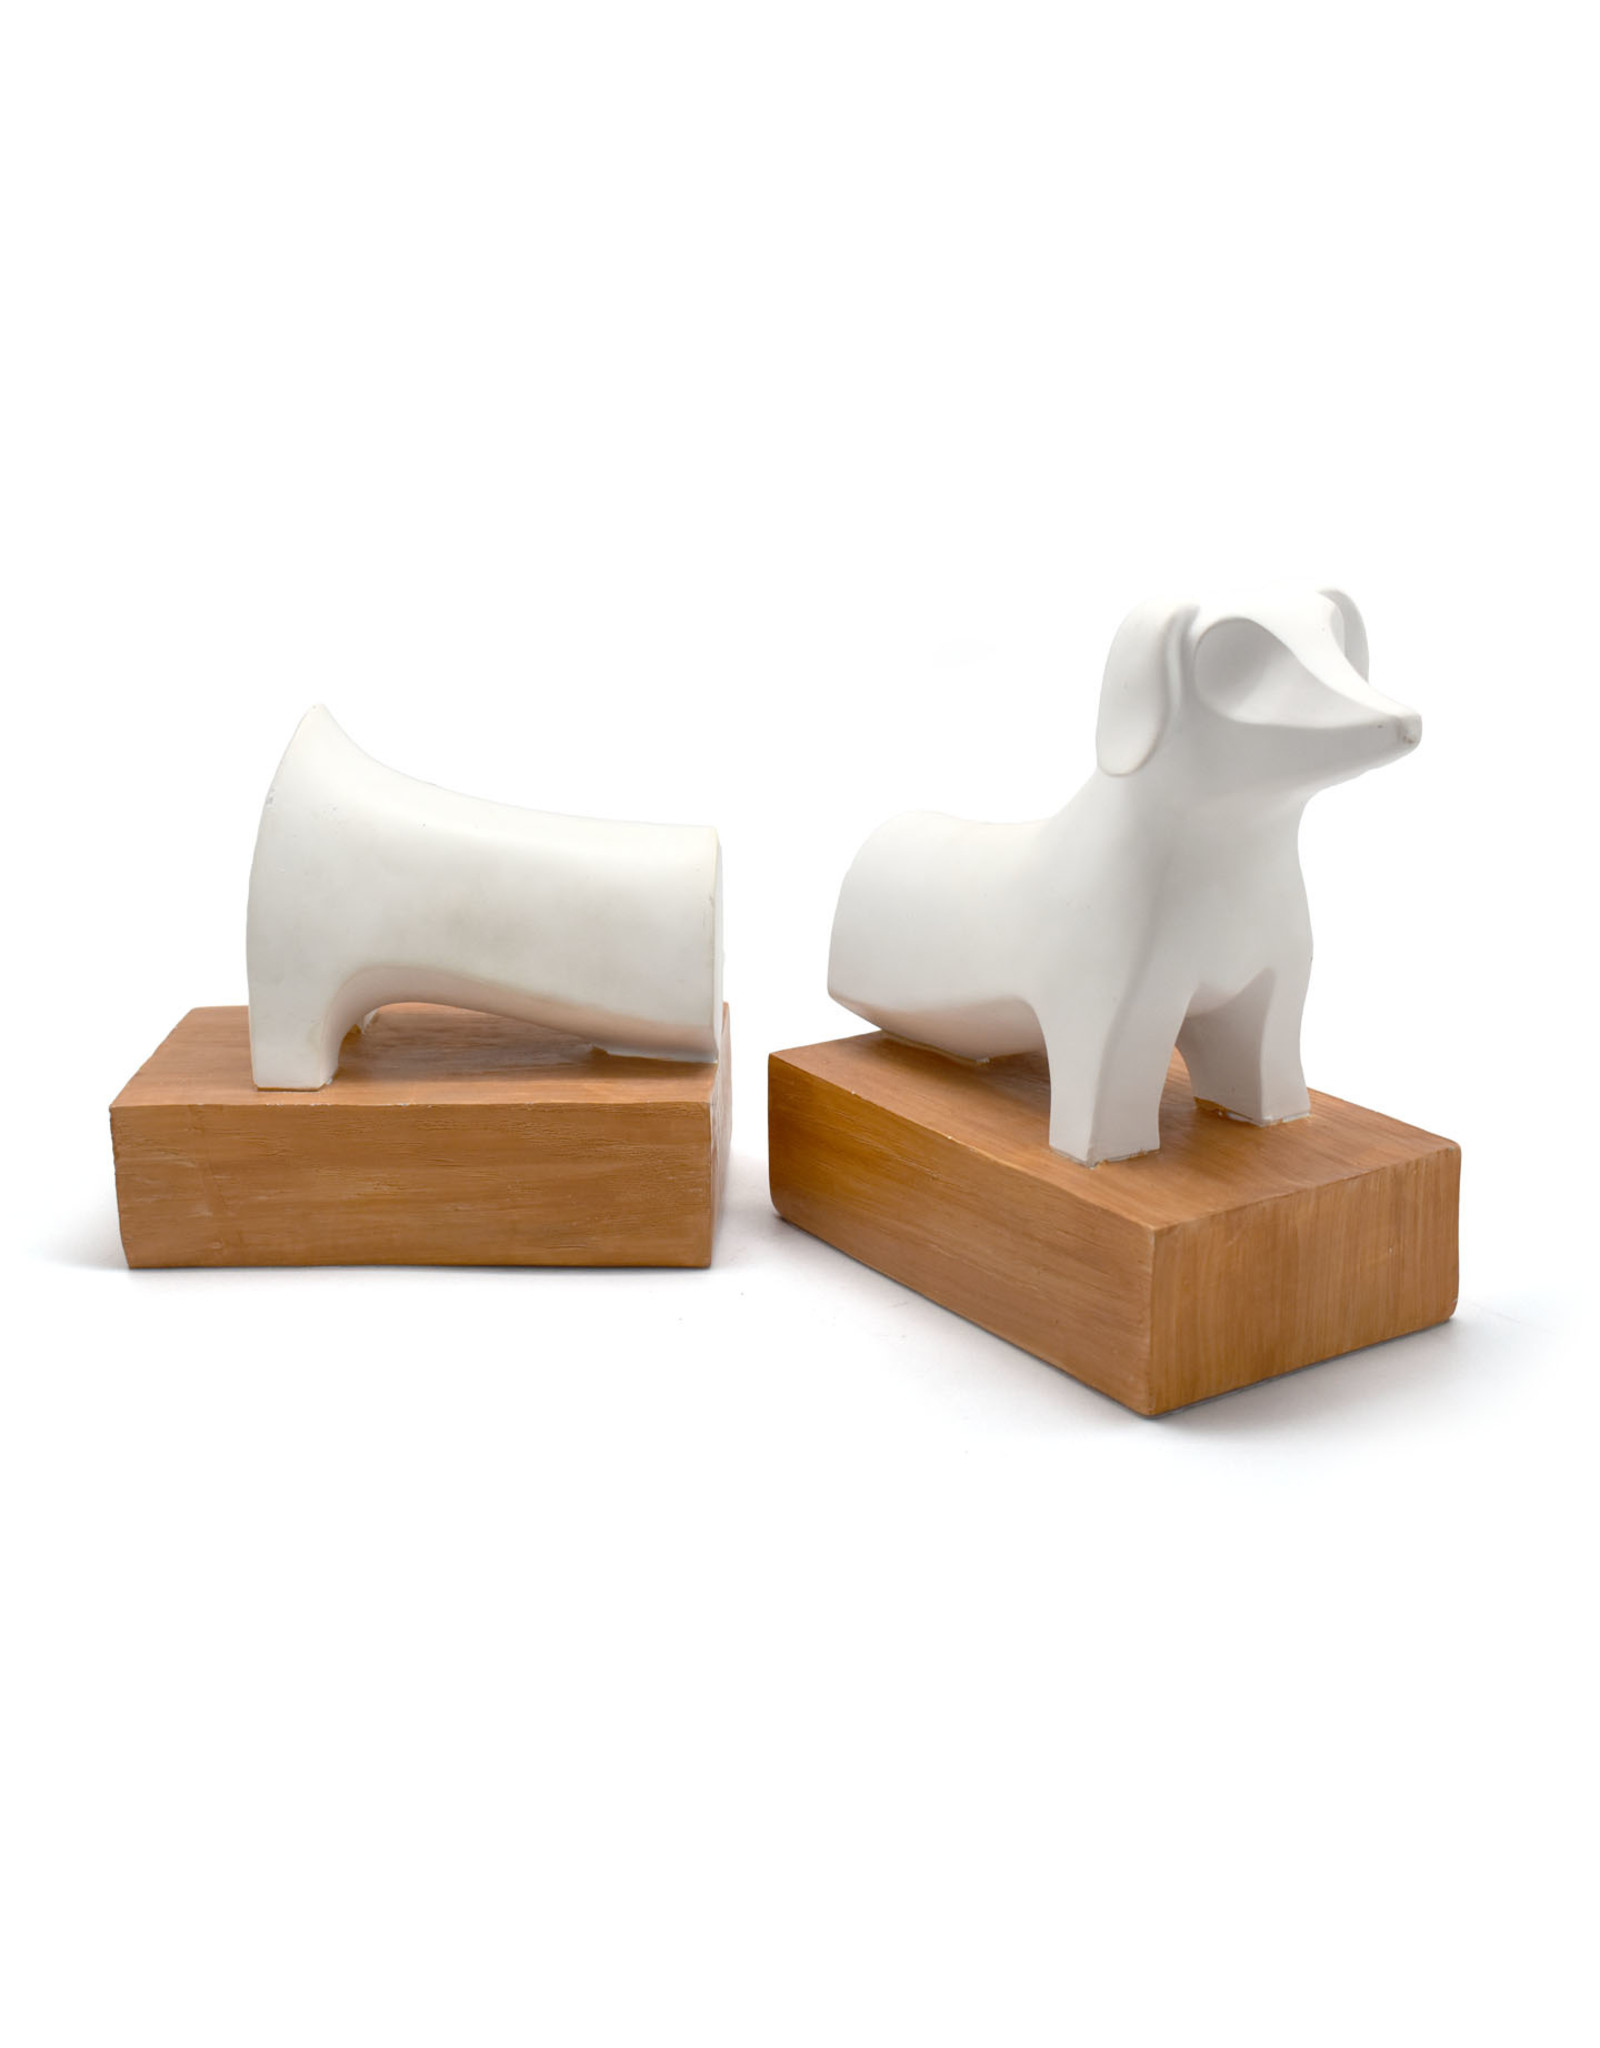 Resin Dog Bookends - Seconds Sale (Curbside Pick-up Only)